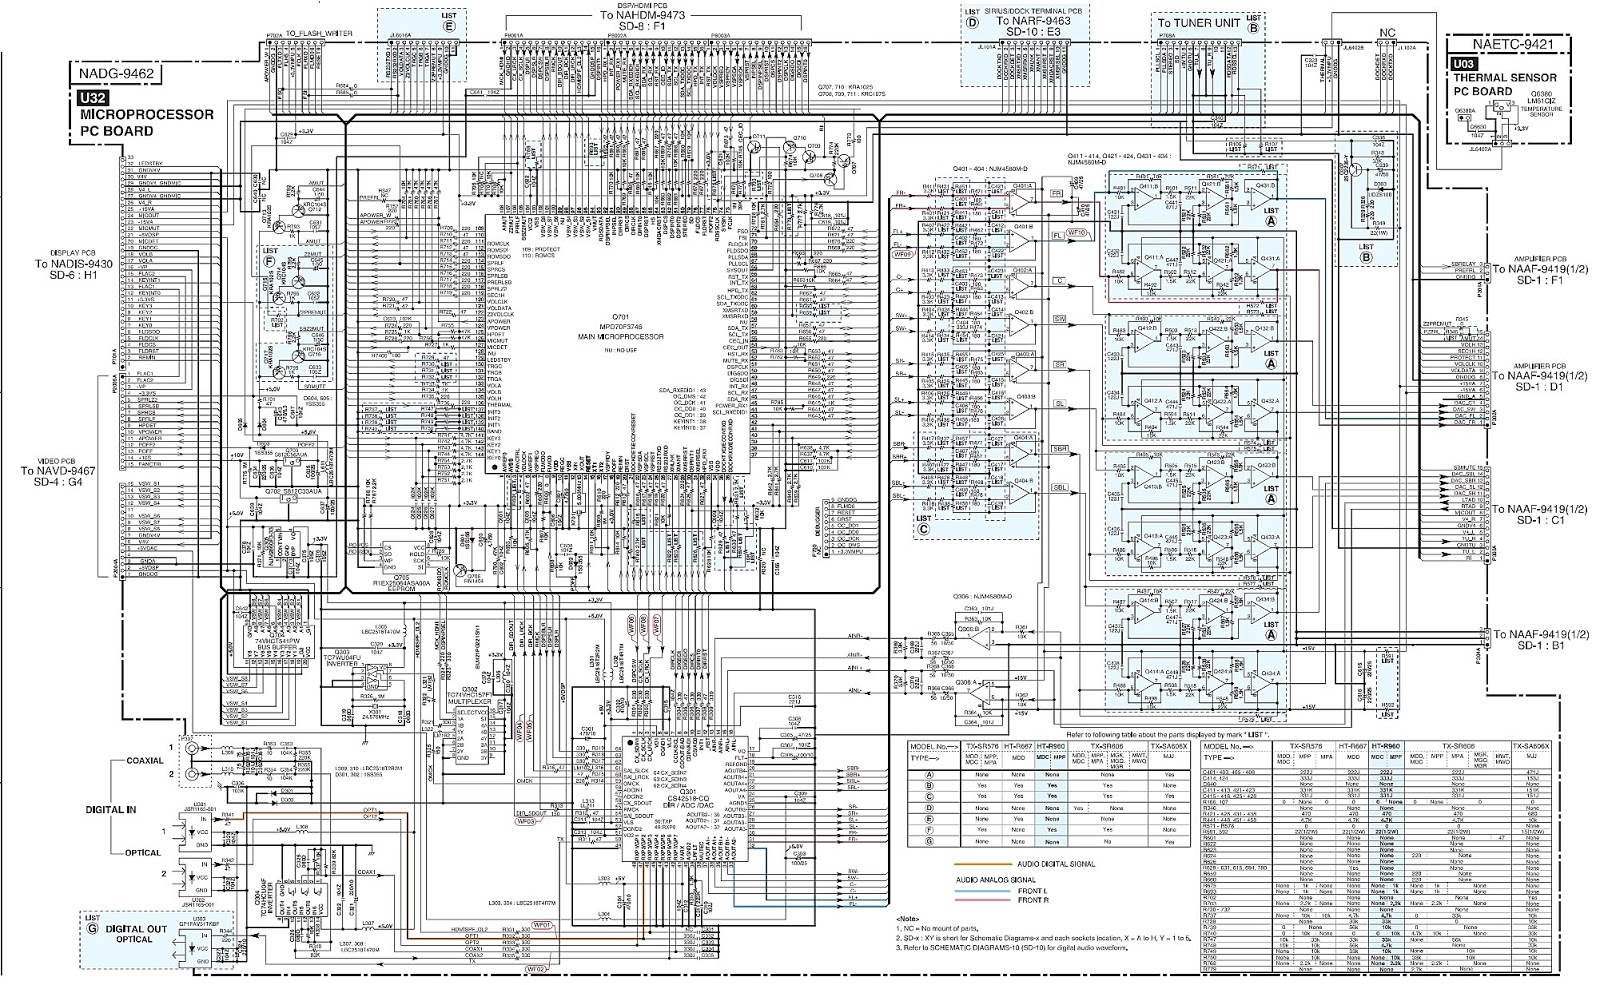 Distribution Board Wiring Diagram Warn M8000 Simple Diagrams